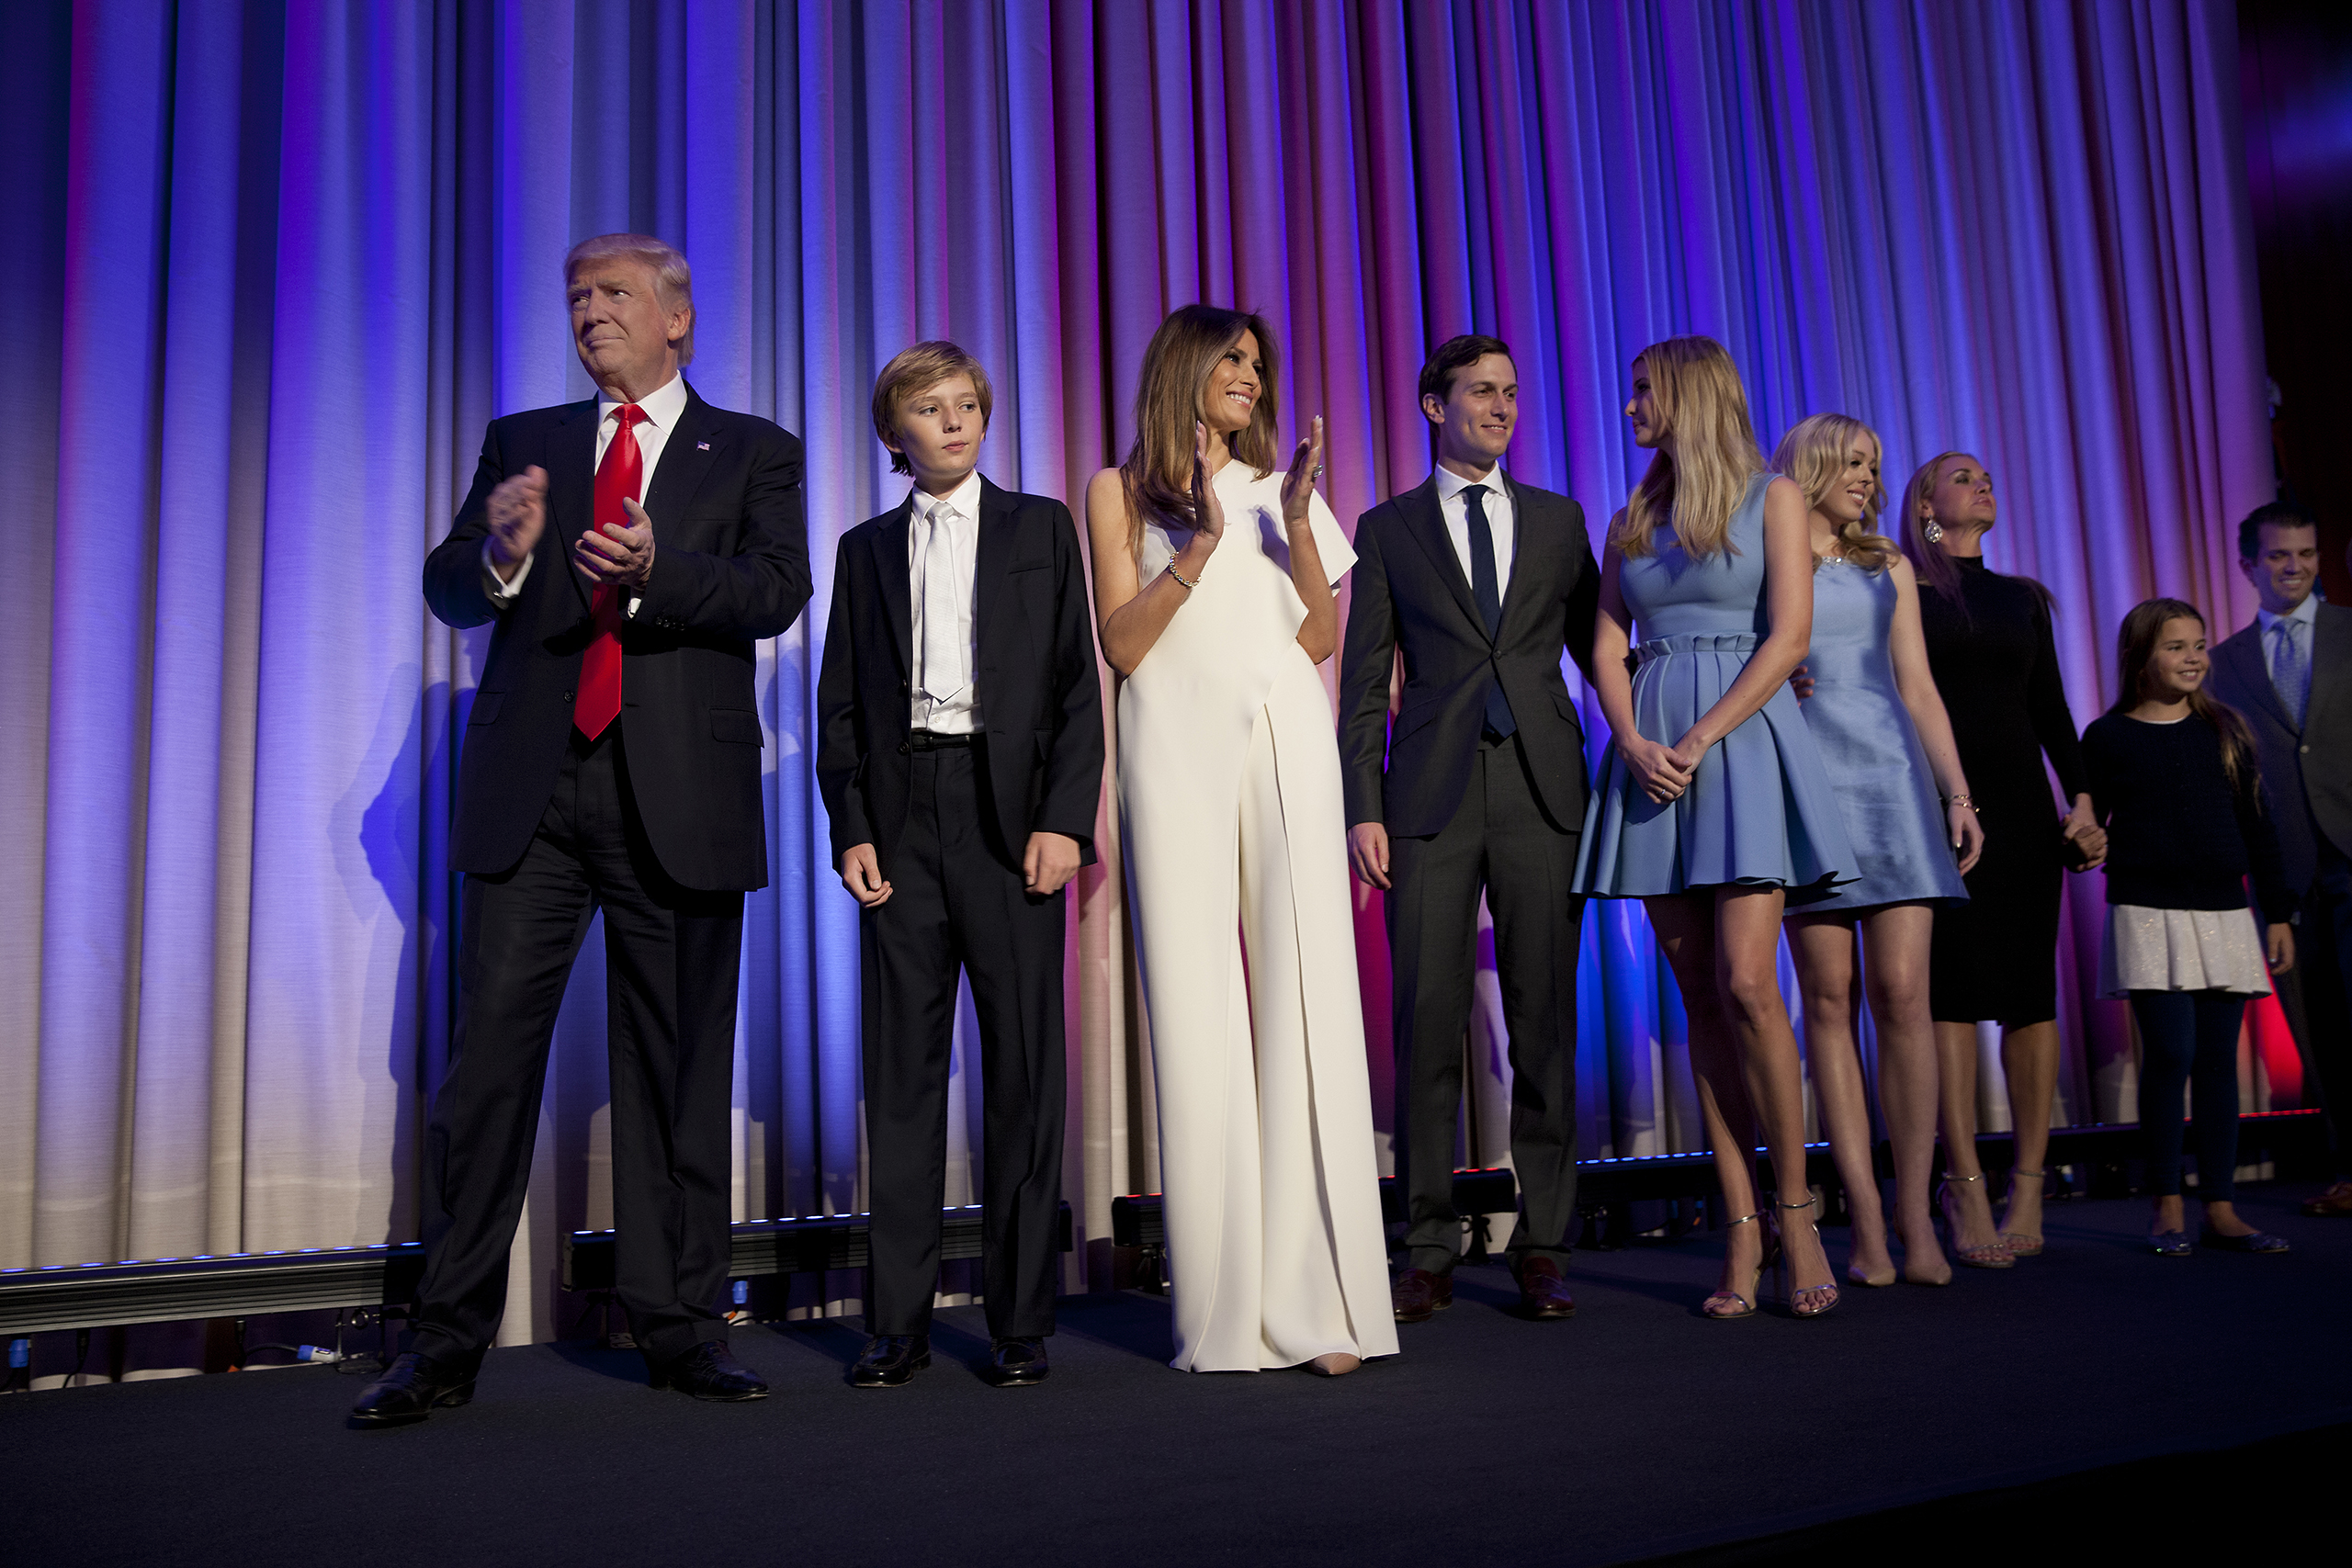 Trump arrives with his family to greet the crowd at his victory celebration in New York on Nov. 9